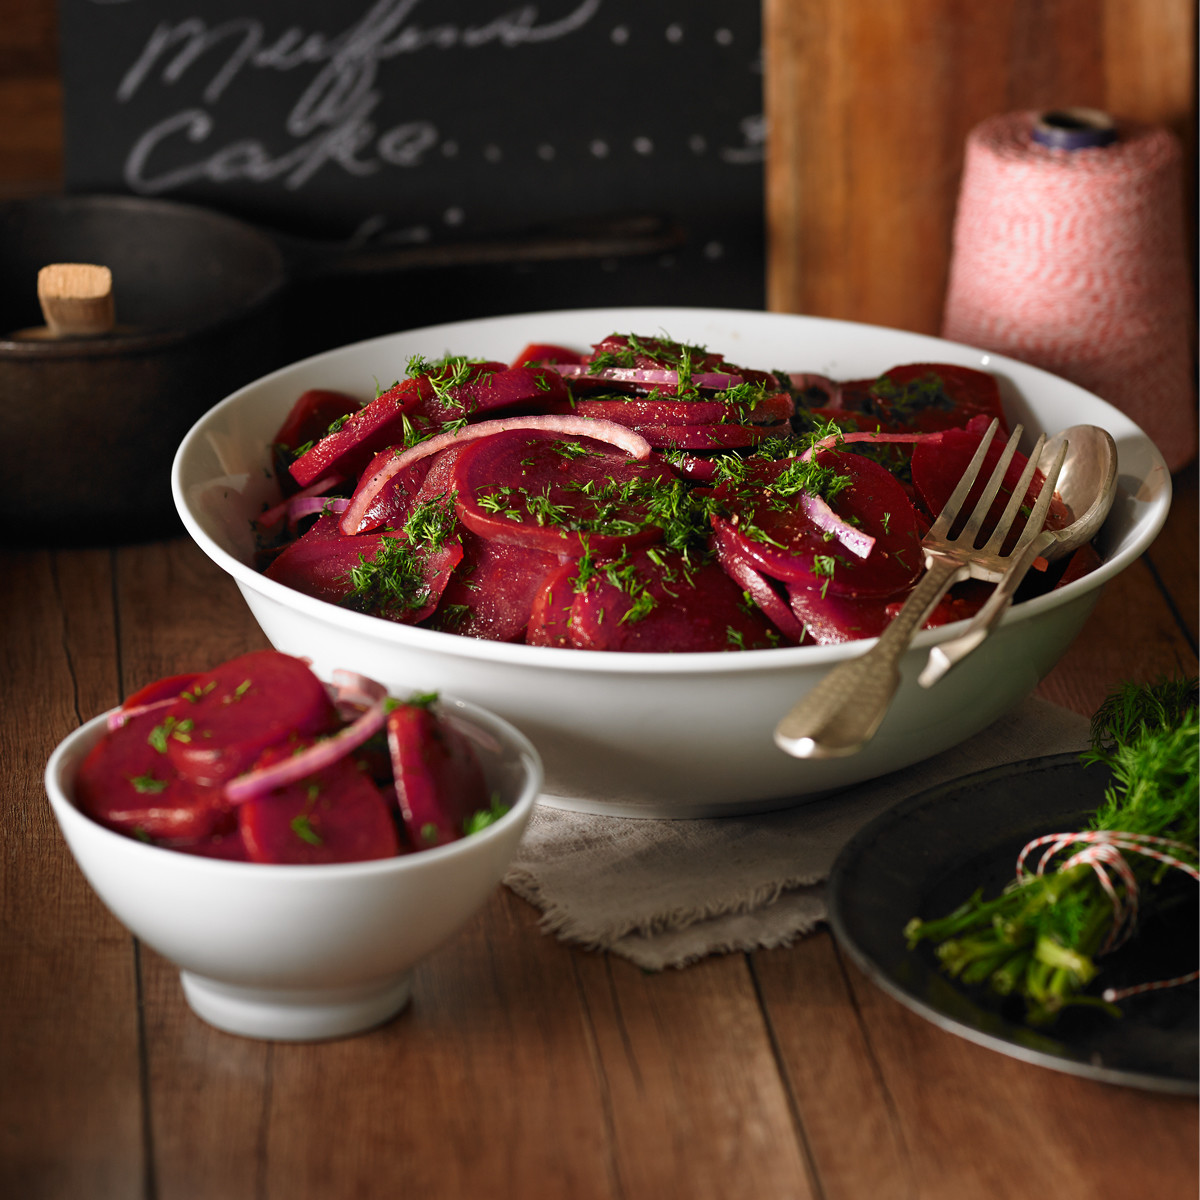 Beet Salad - Serves 8 People